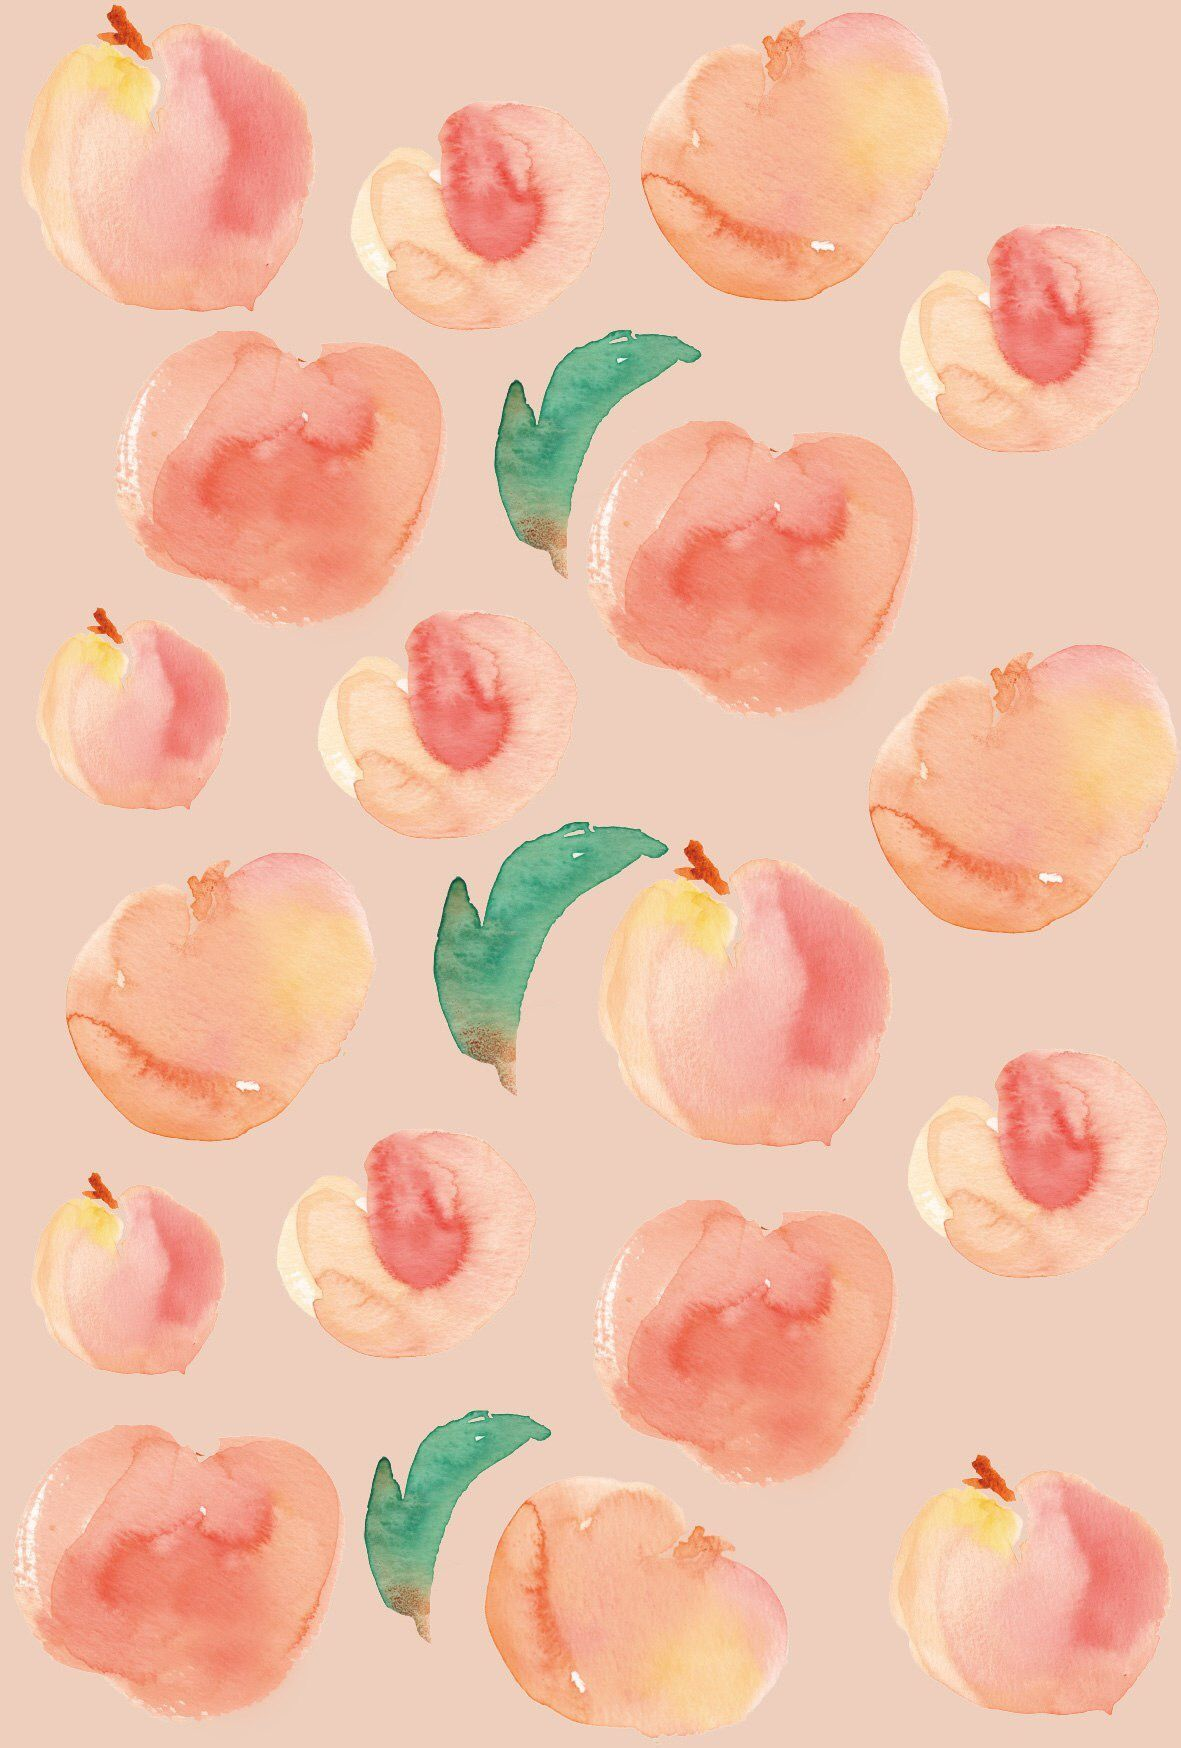 peach aesthetic wallpapers top free peach aesthetic backgrounds wallpaperaccess peach aesthetic wallpapers top free